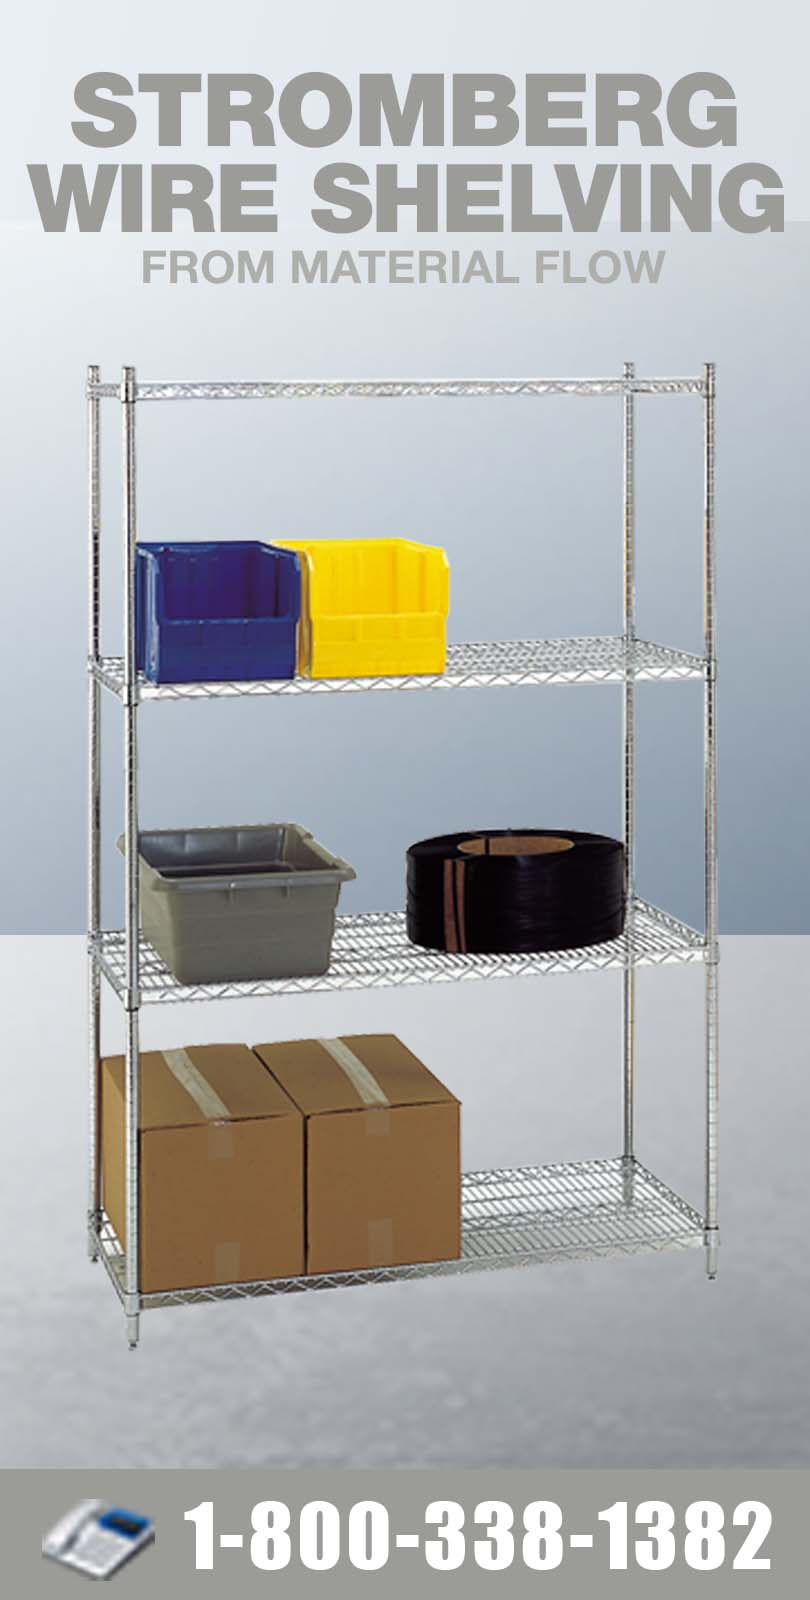 Stromberg Wire Shelving from Material Flow